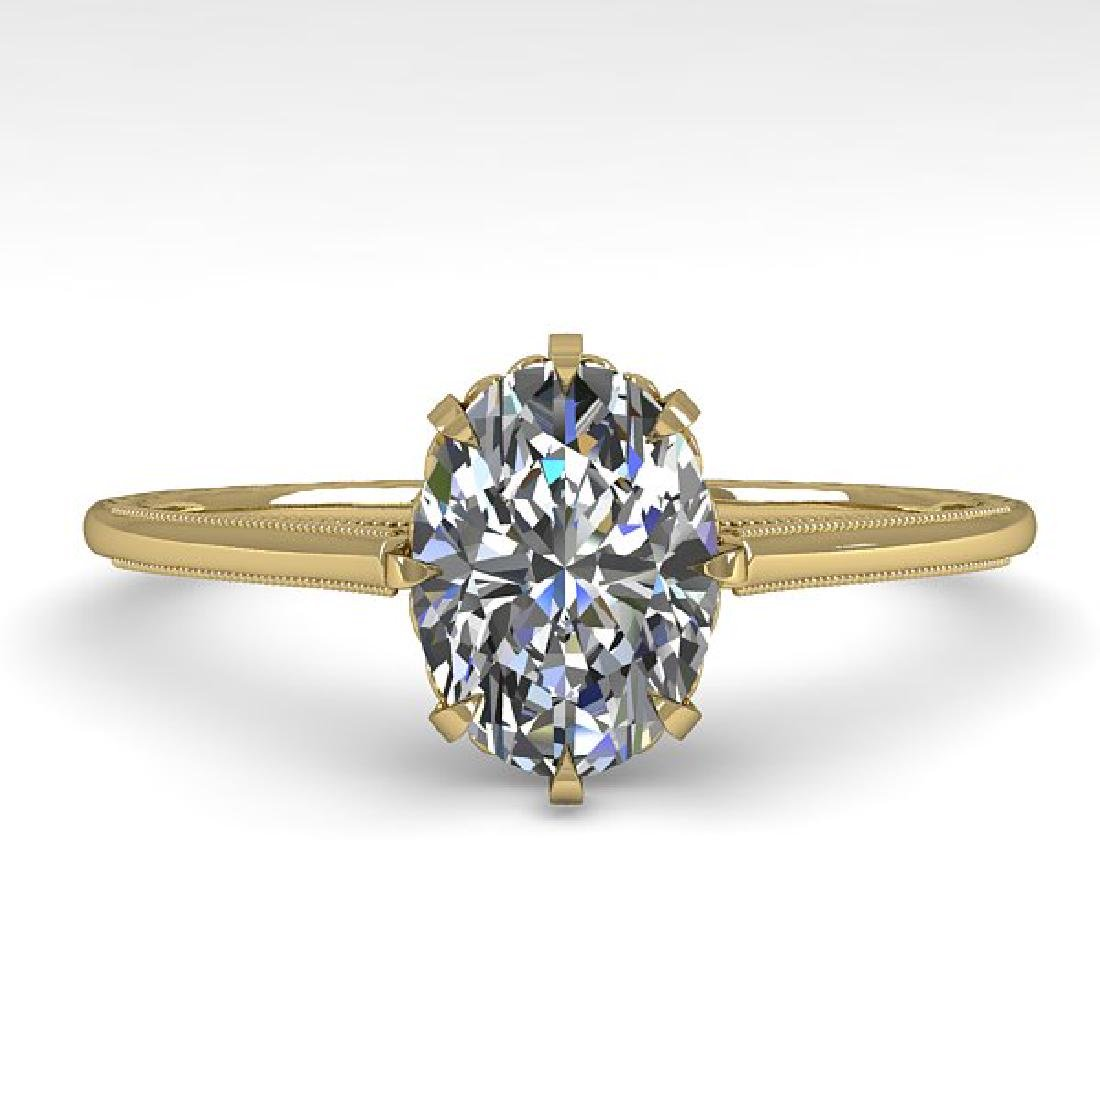 1.0 CTW VS/SI Oval Diamond Solitaire Ring 14K Yellow